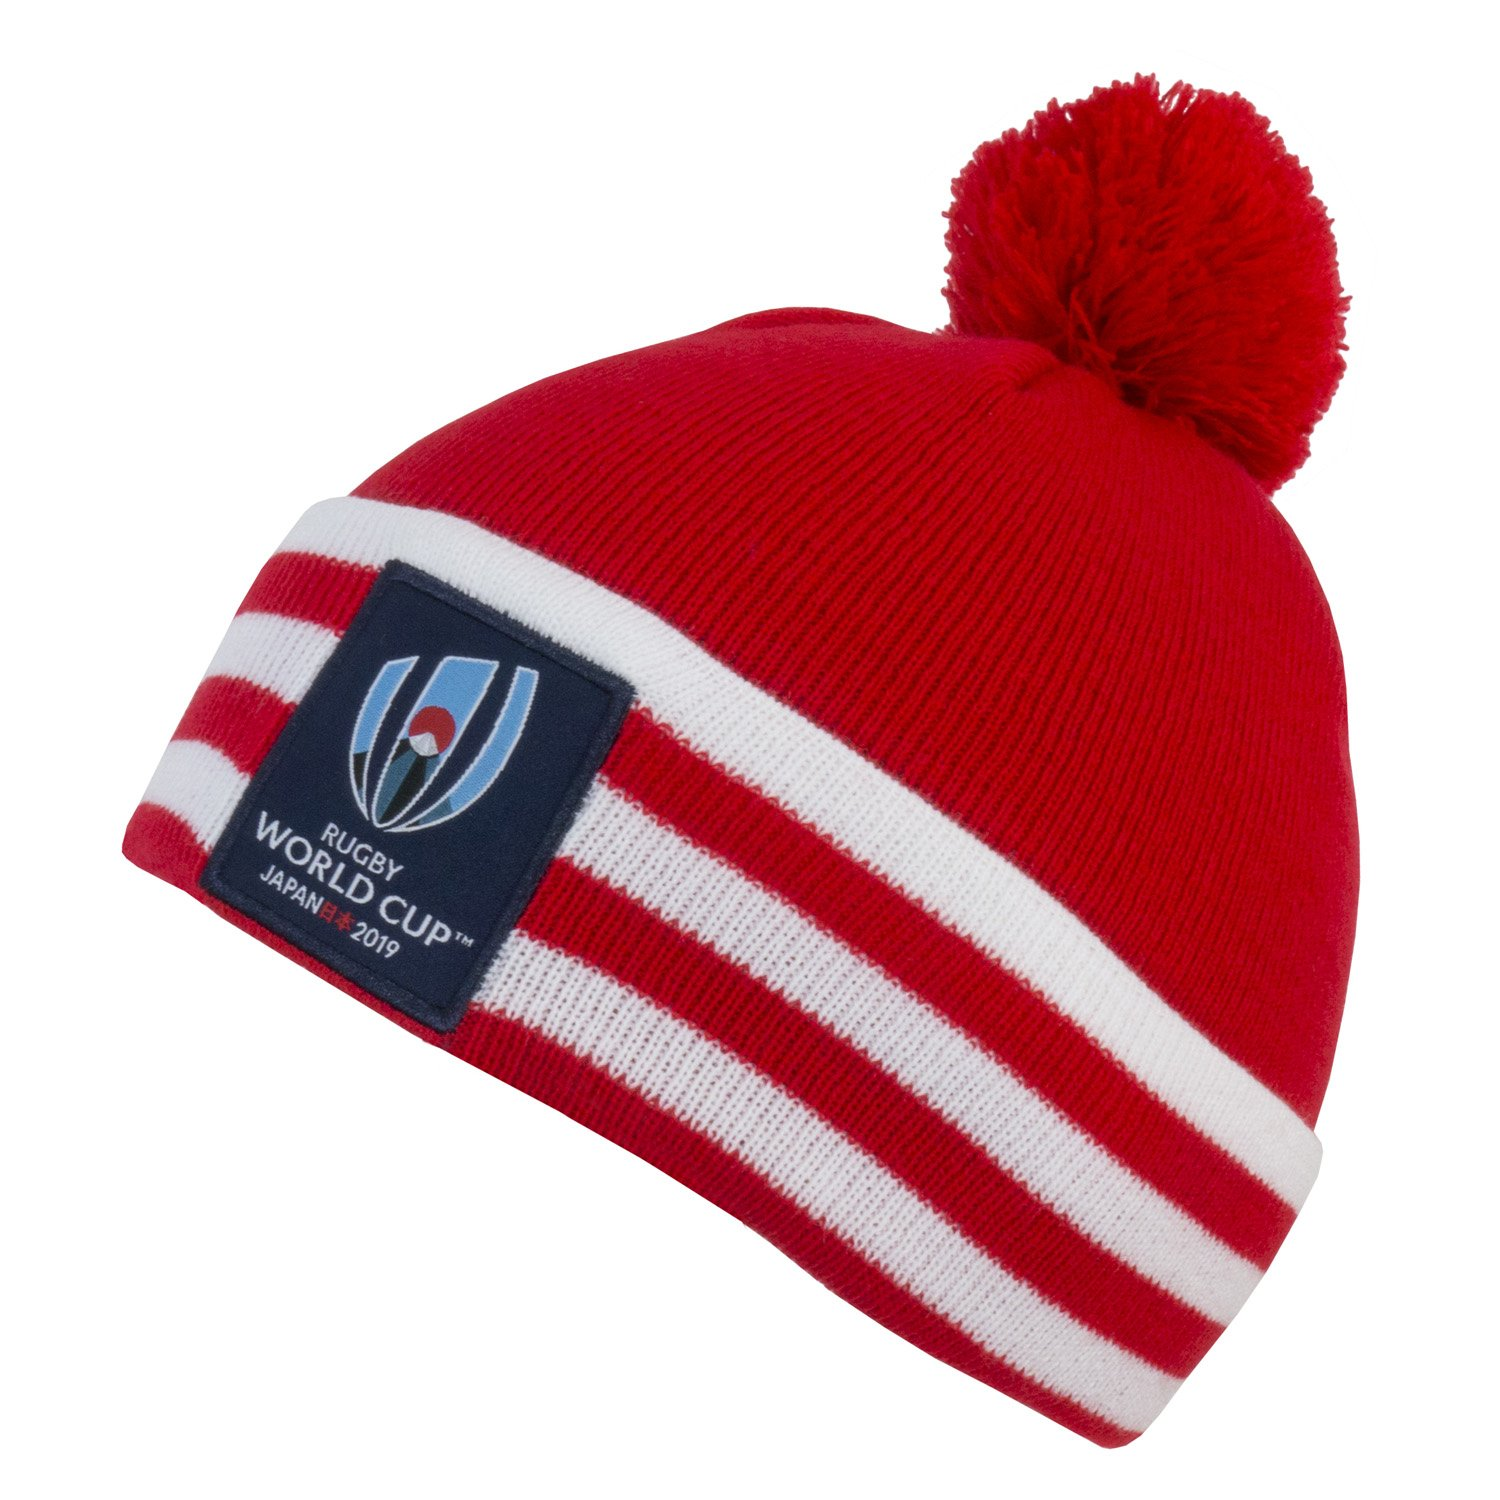 Rugby World Cup 2019 Bobble Beanie